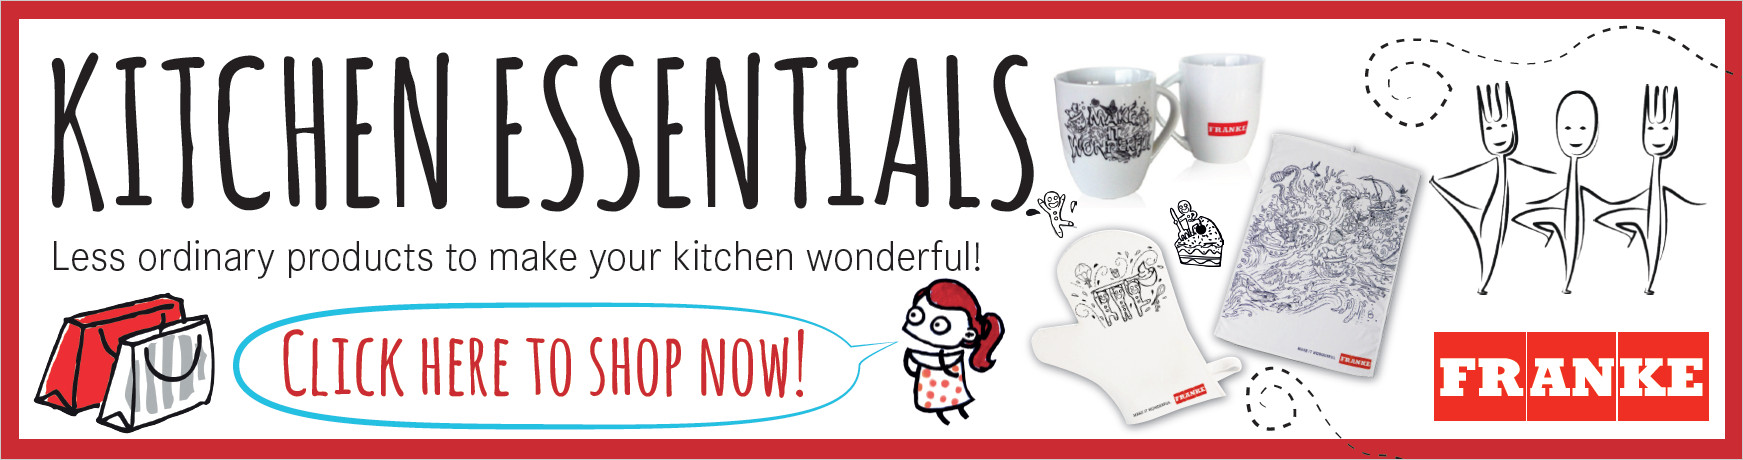 Central Services Kitchen Essentials Range